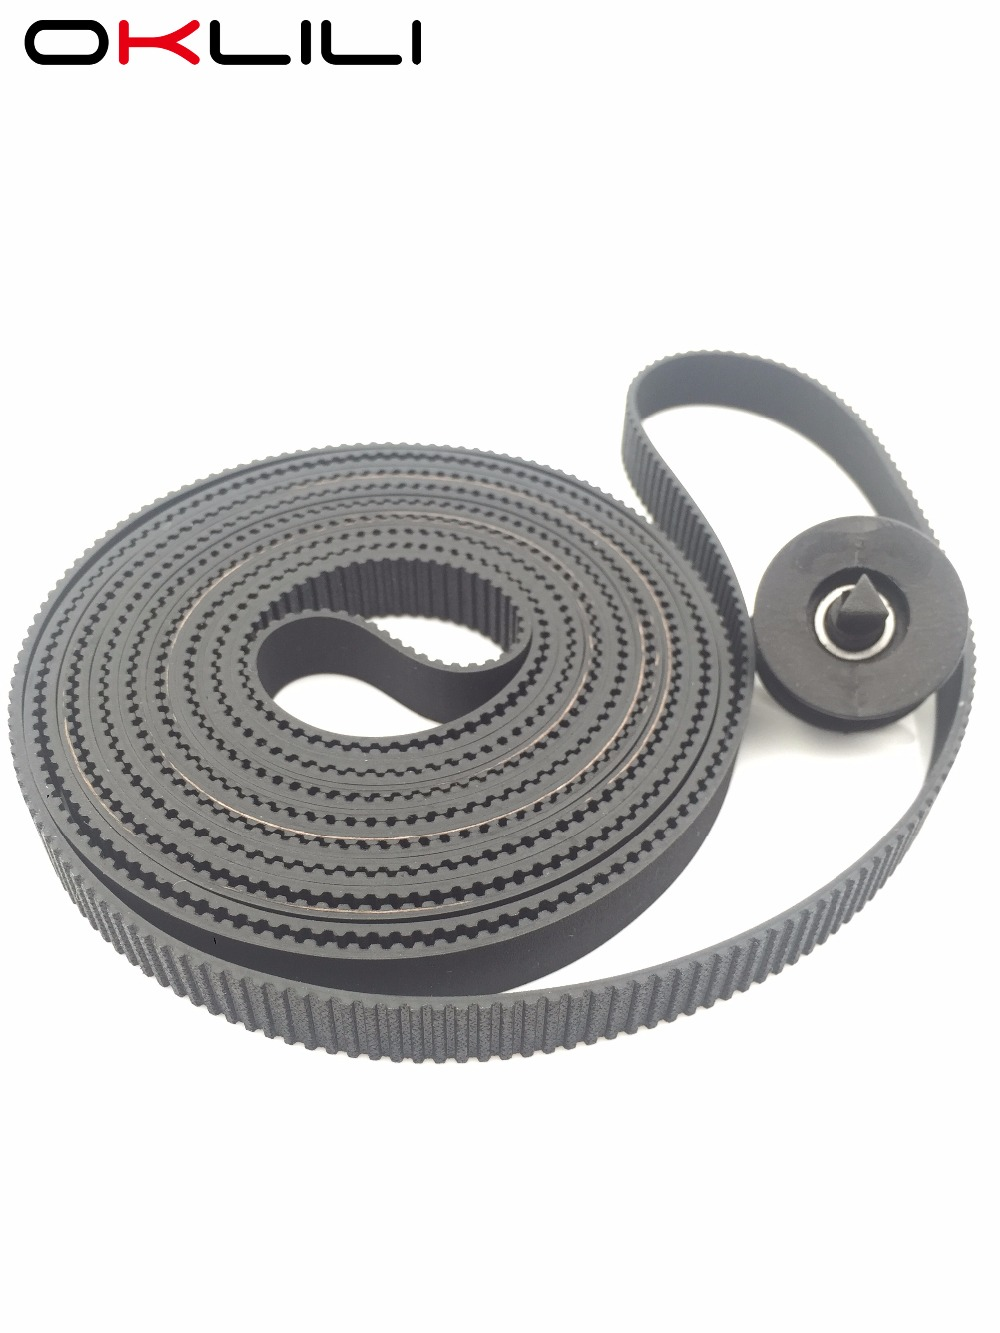 10PC C7770 60014 Carriage Belt 42 B0 Size Pulley for HP DesignJet 500 500PS 800 800PS